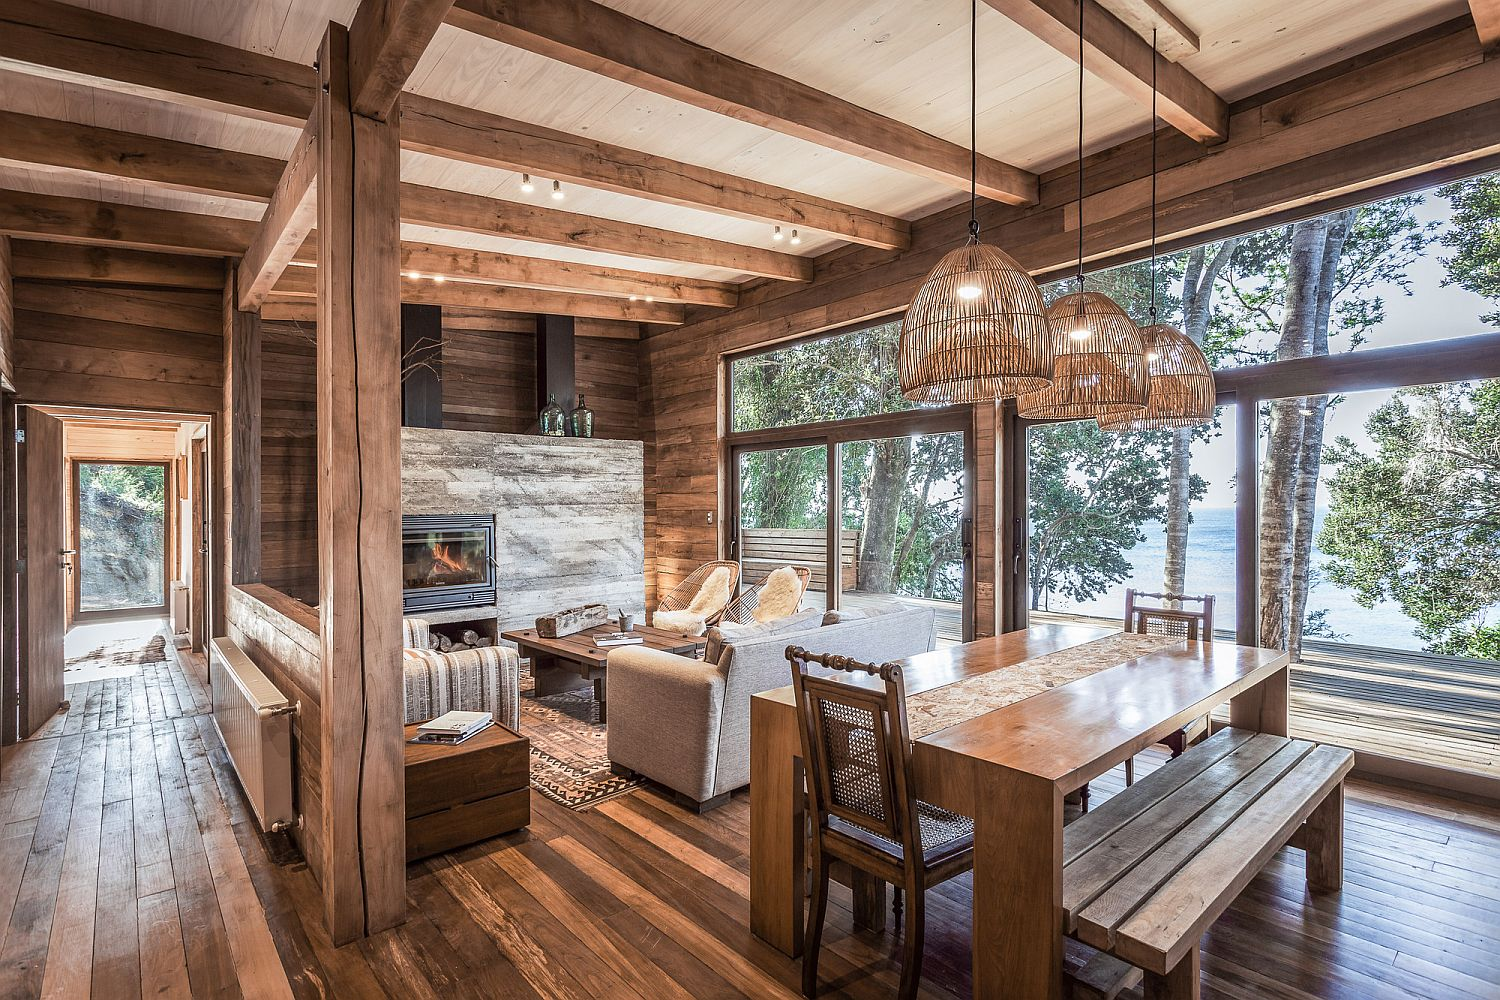 Natural wooden decor and interior give the home a warm, inviting look